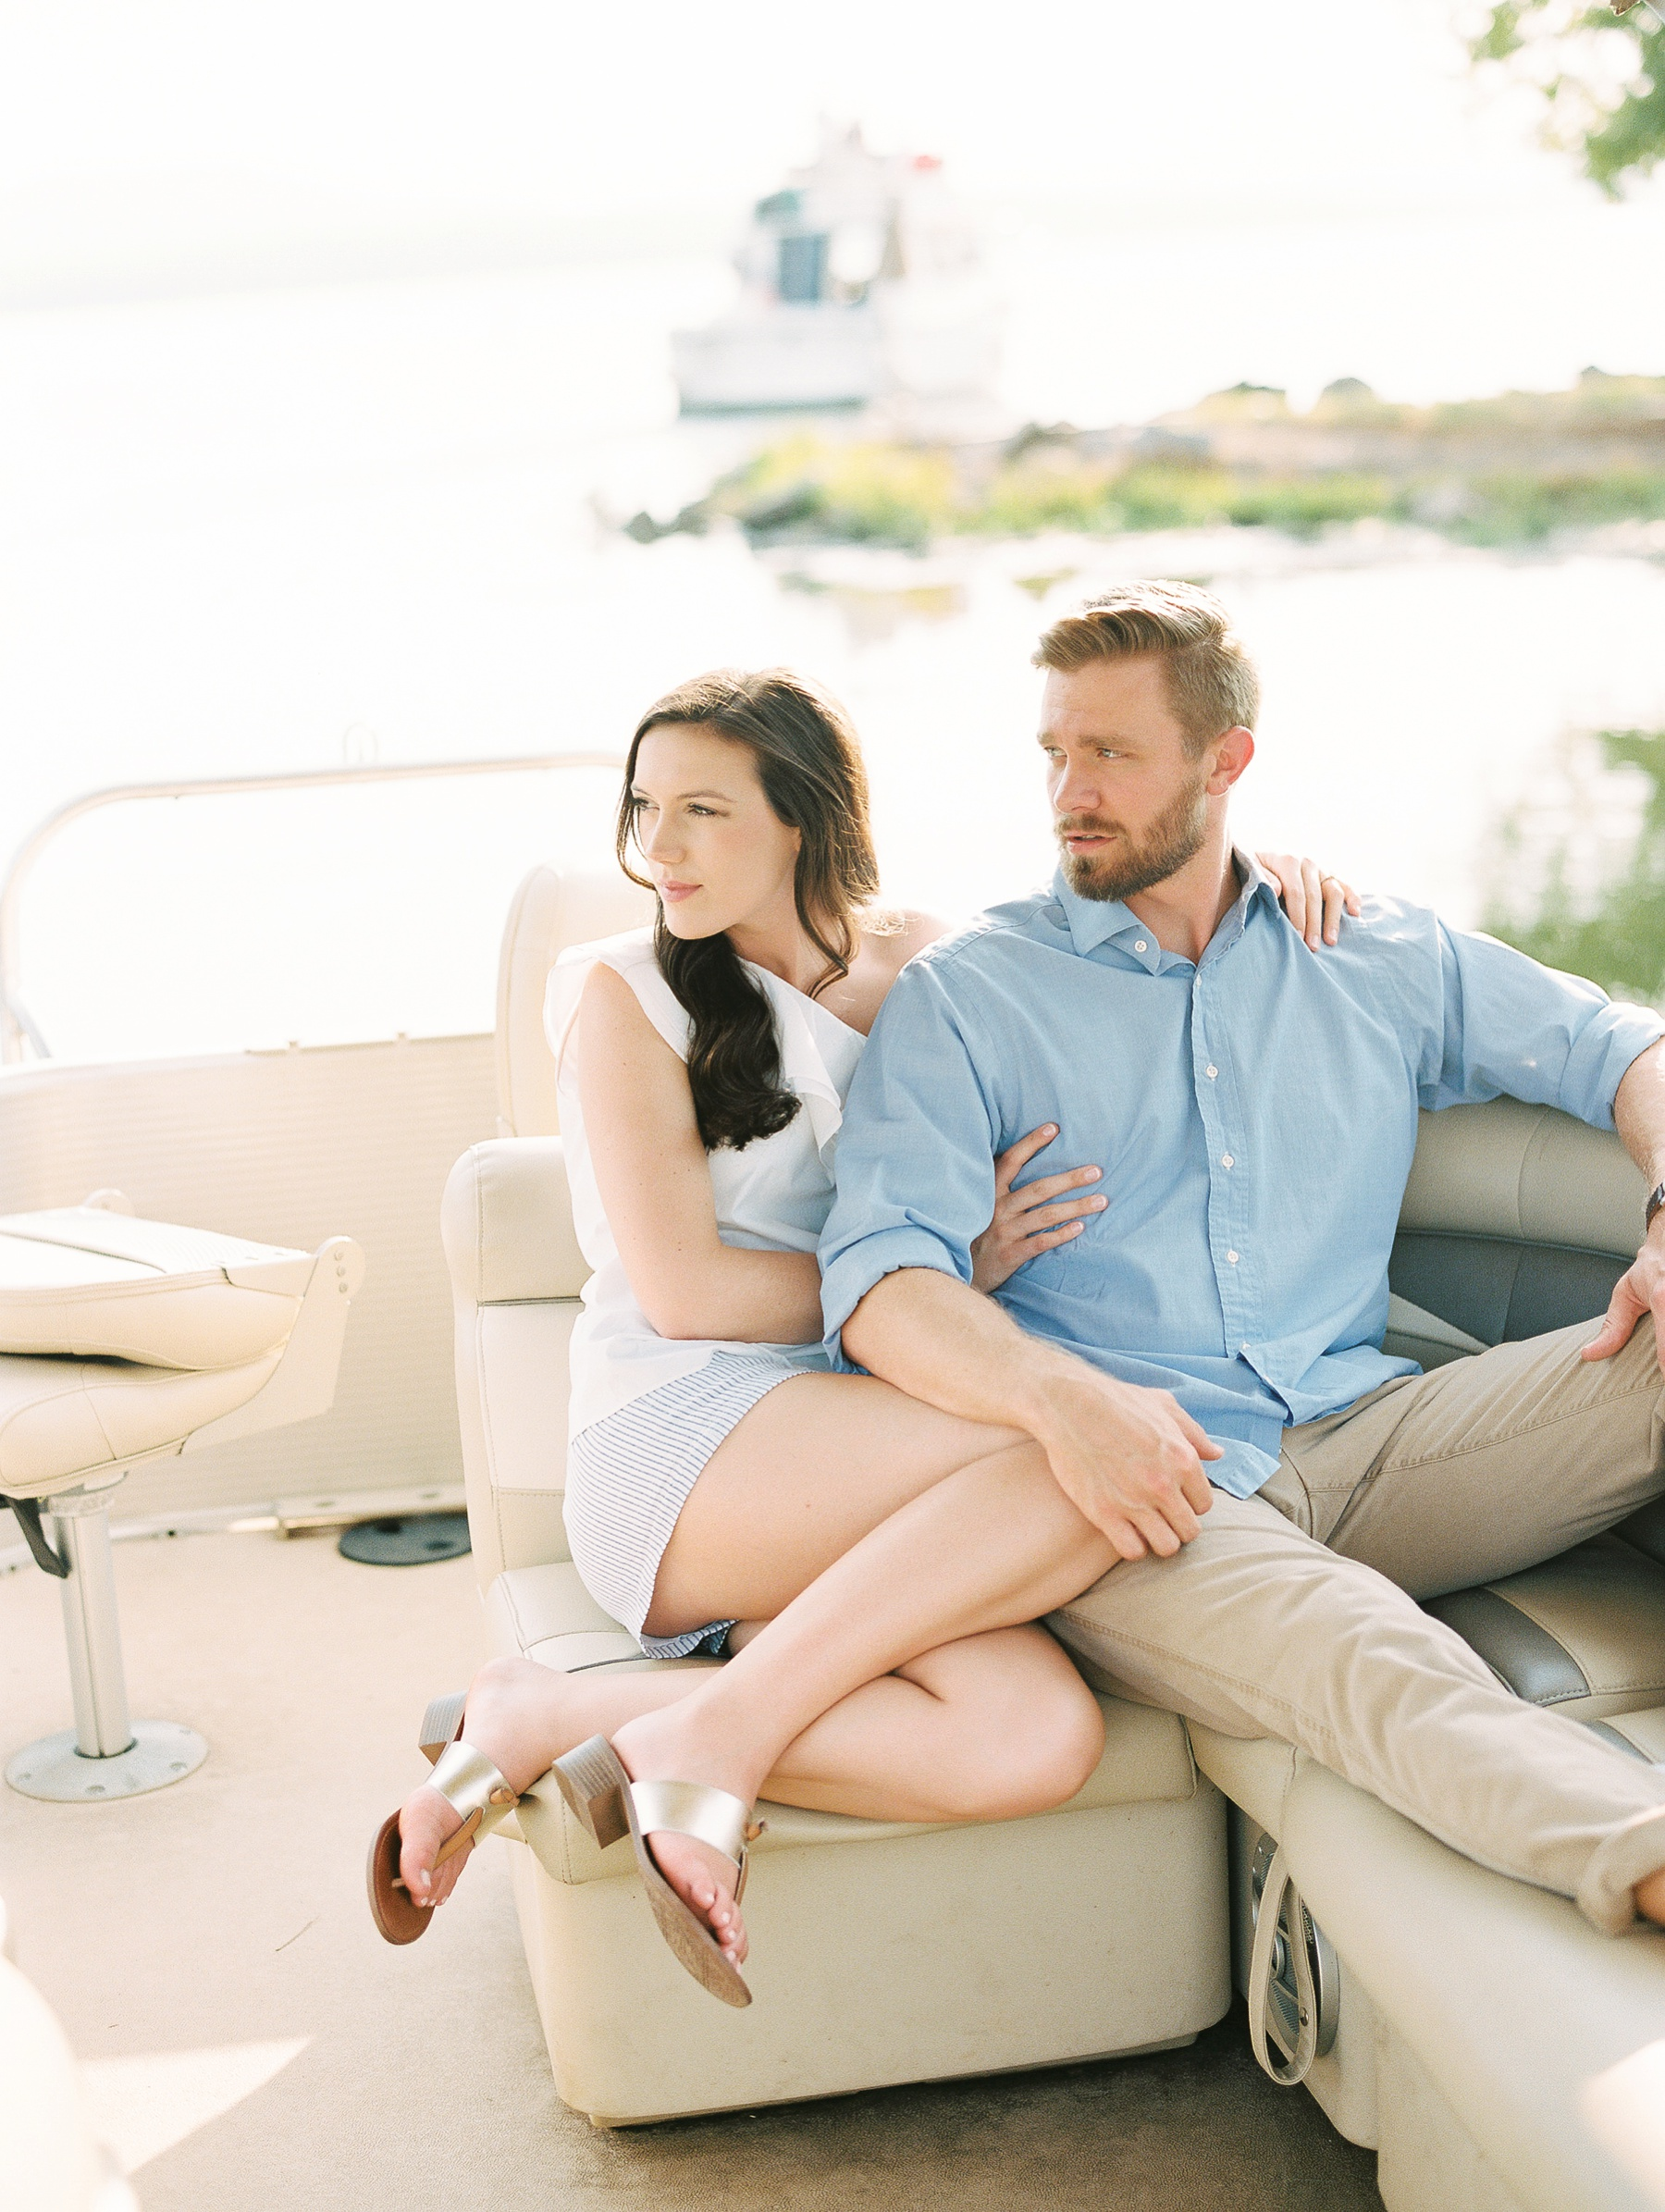 Nautical Boat Engagement Session Film Photographer_0550.jpg